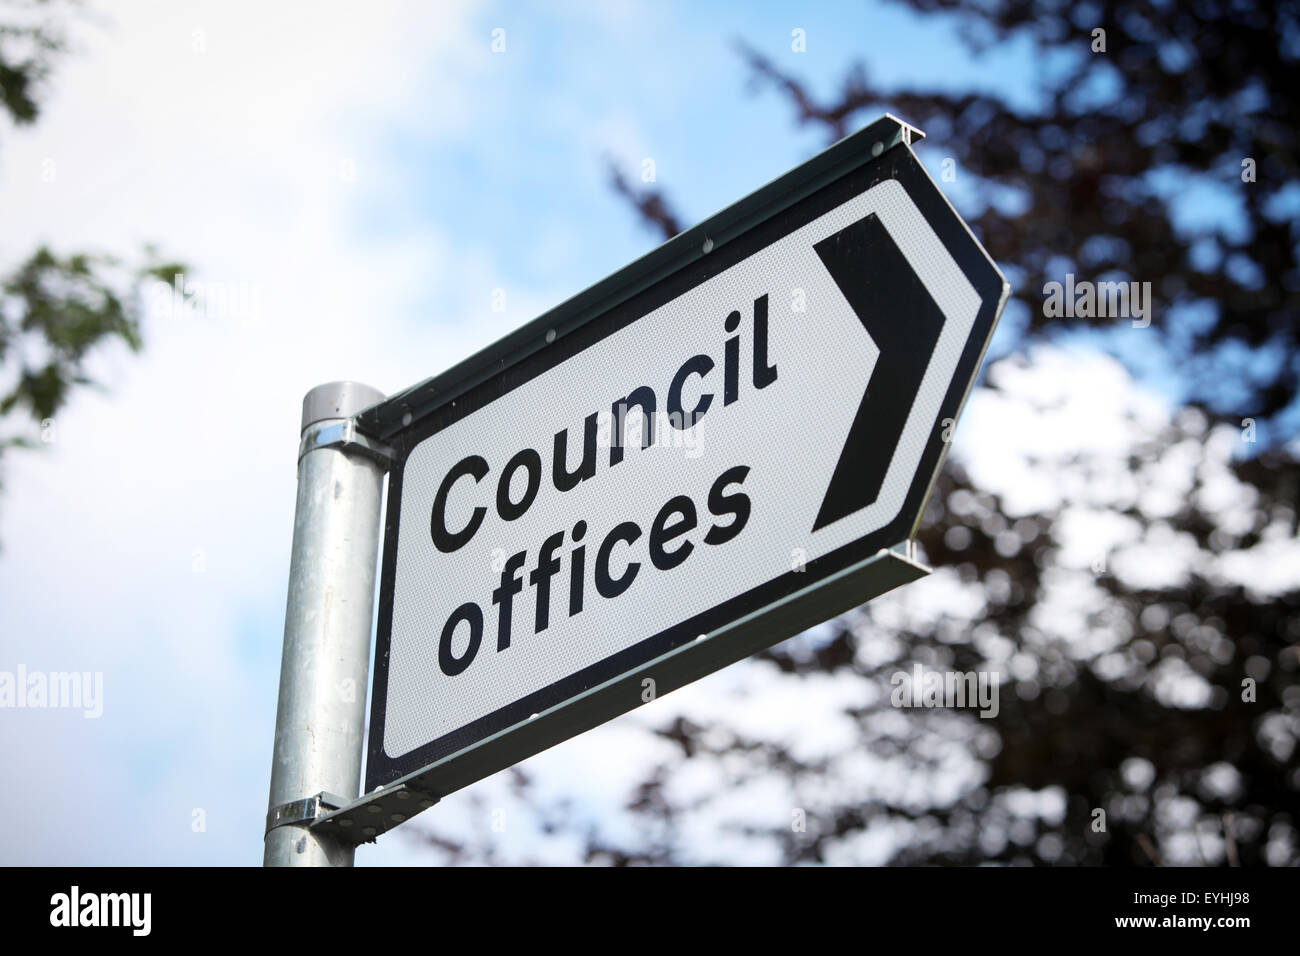 Council Offices street sign - Stock Image